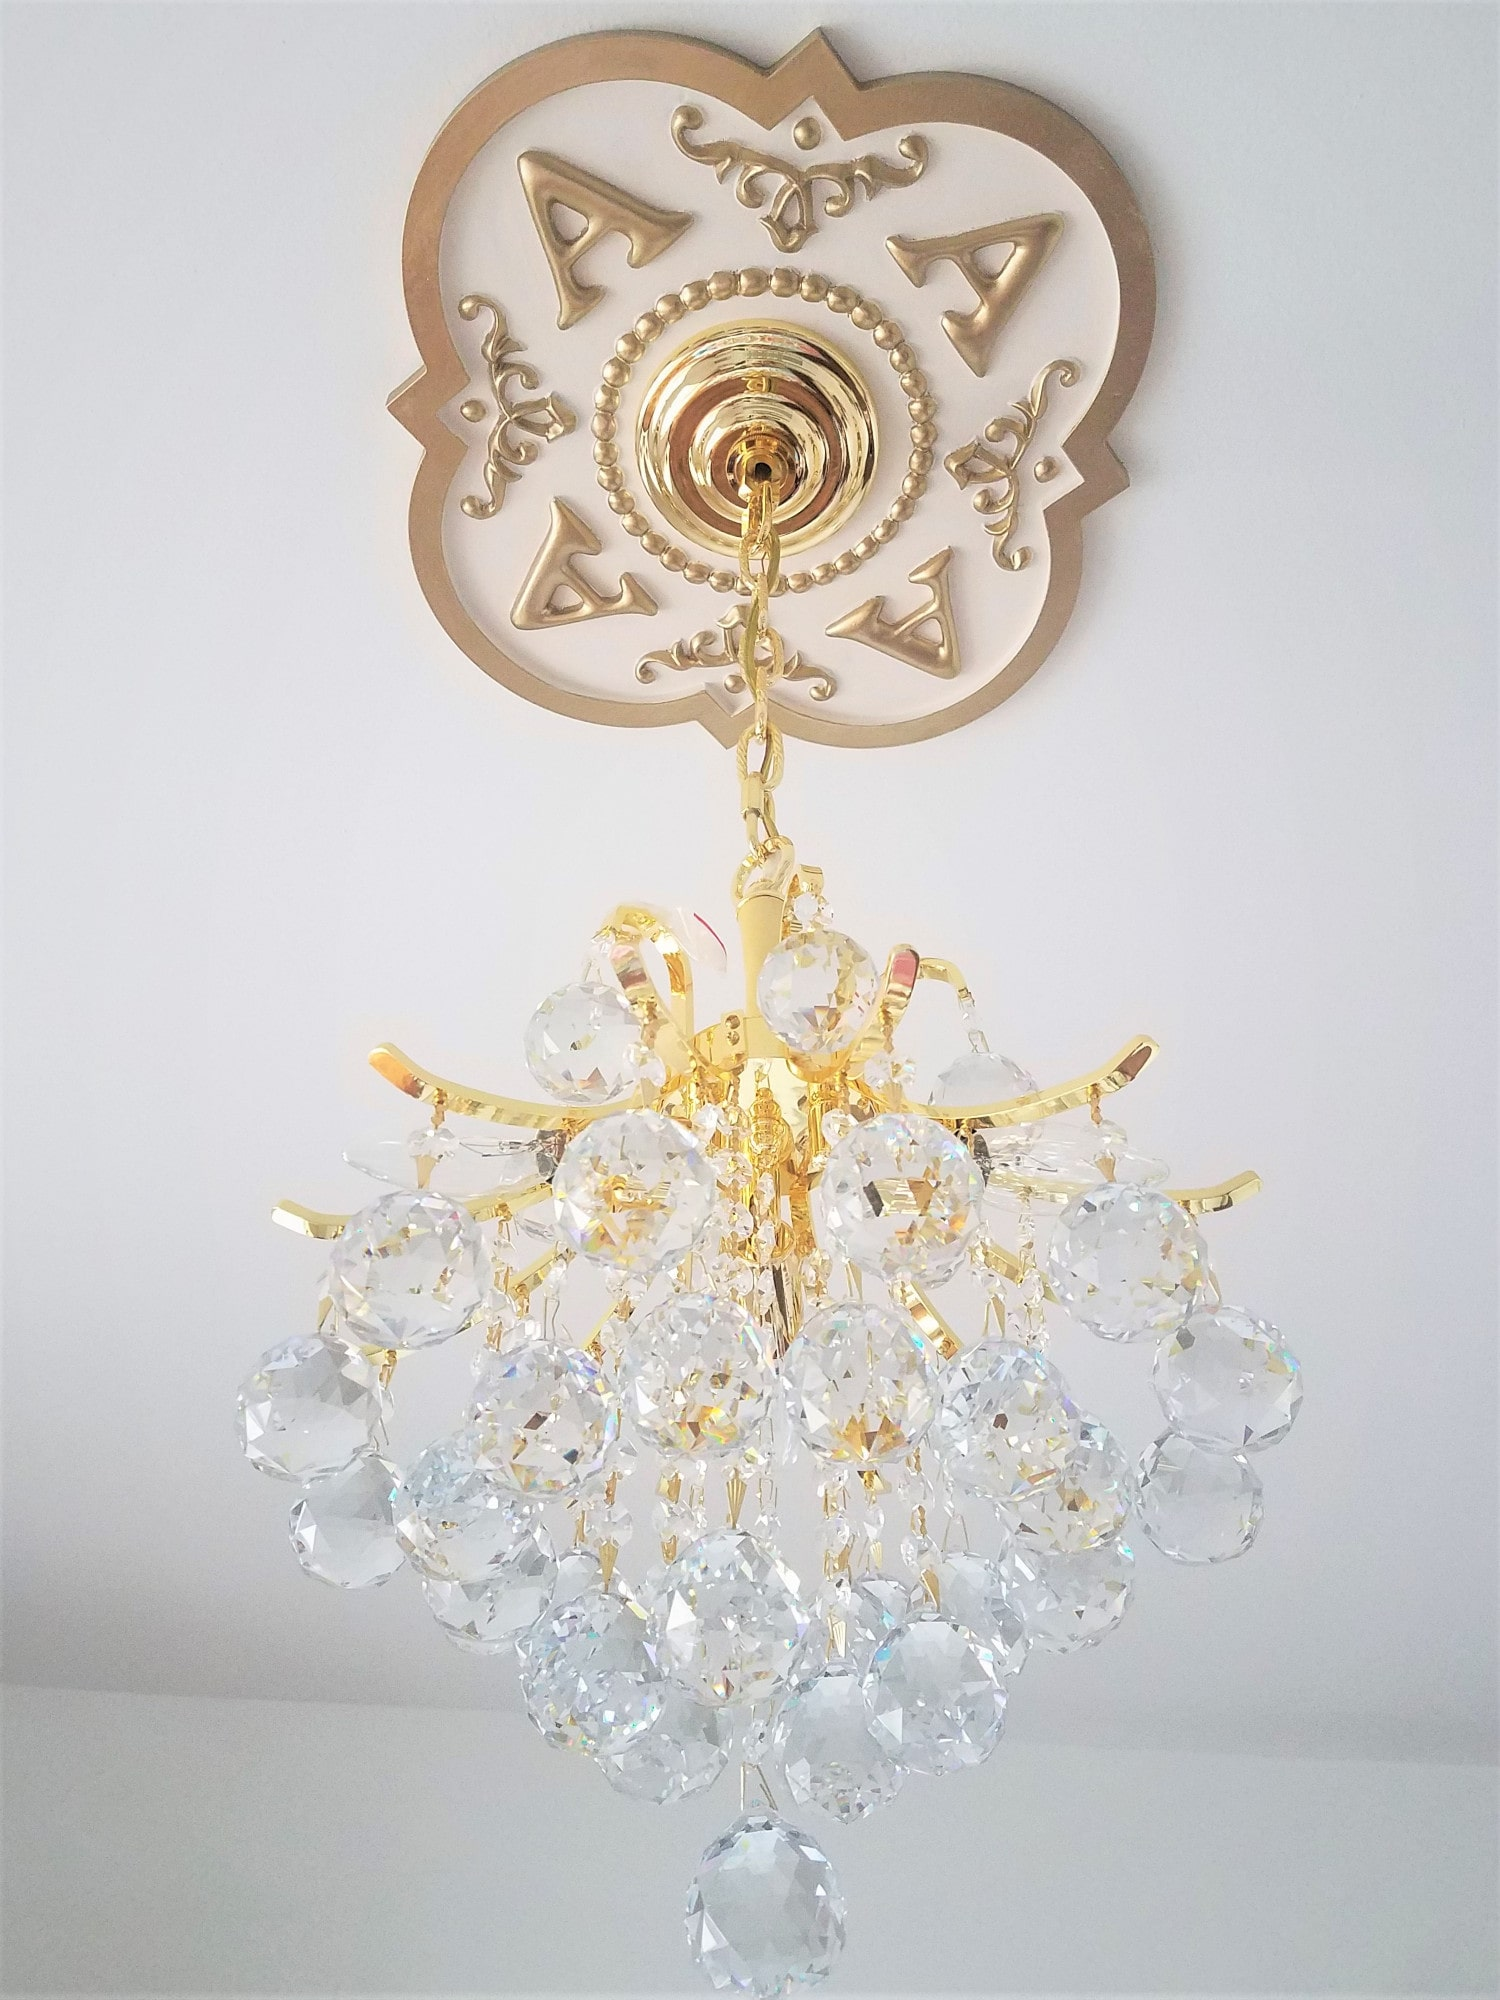 pin metallic hand faux decorative by painted medallion ceilings brass sophisticatedglitz ceiling